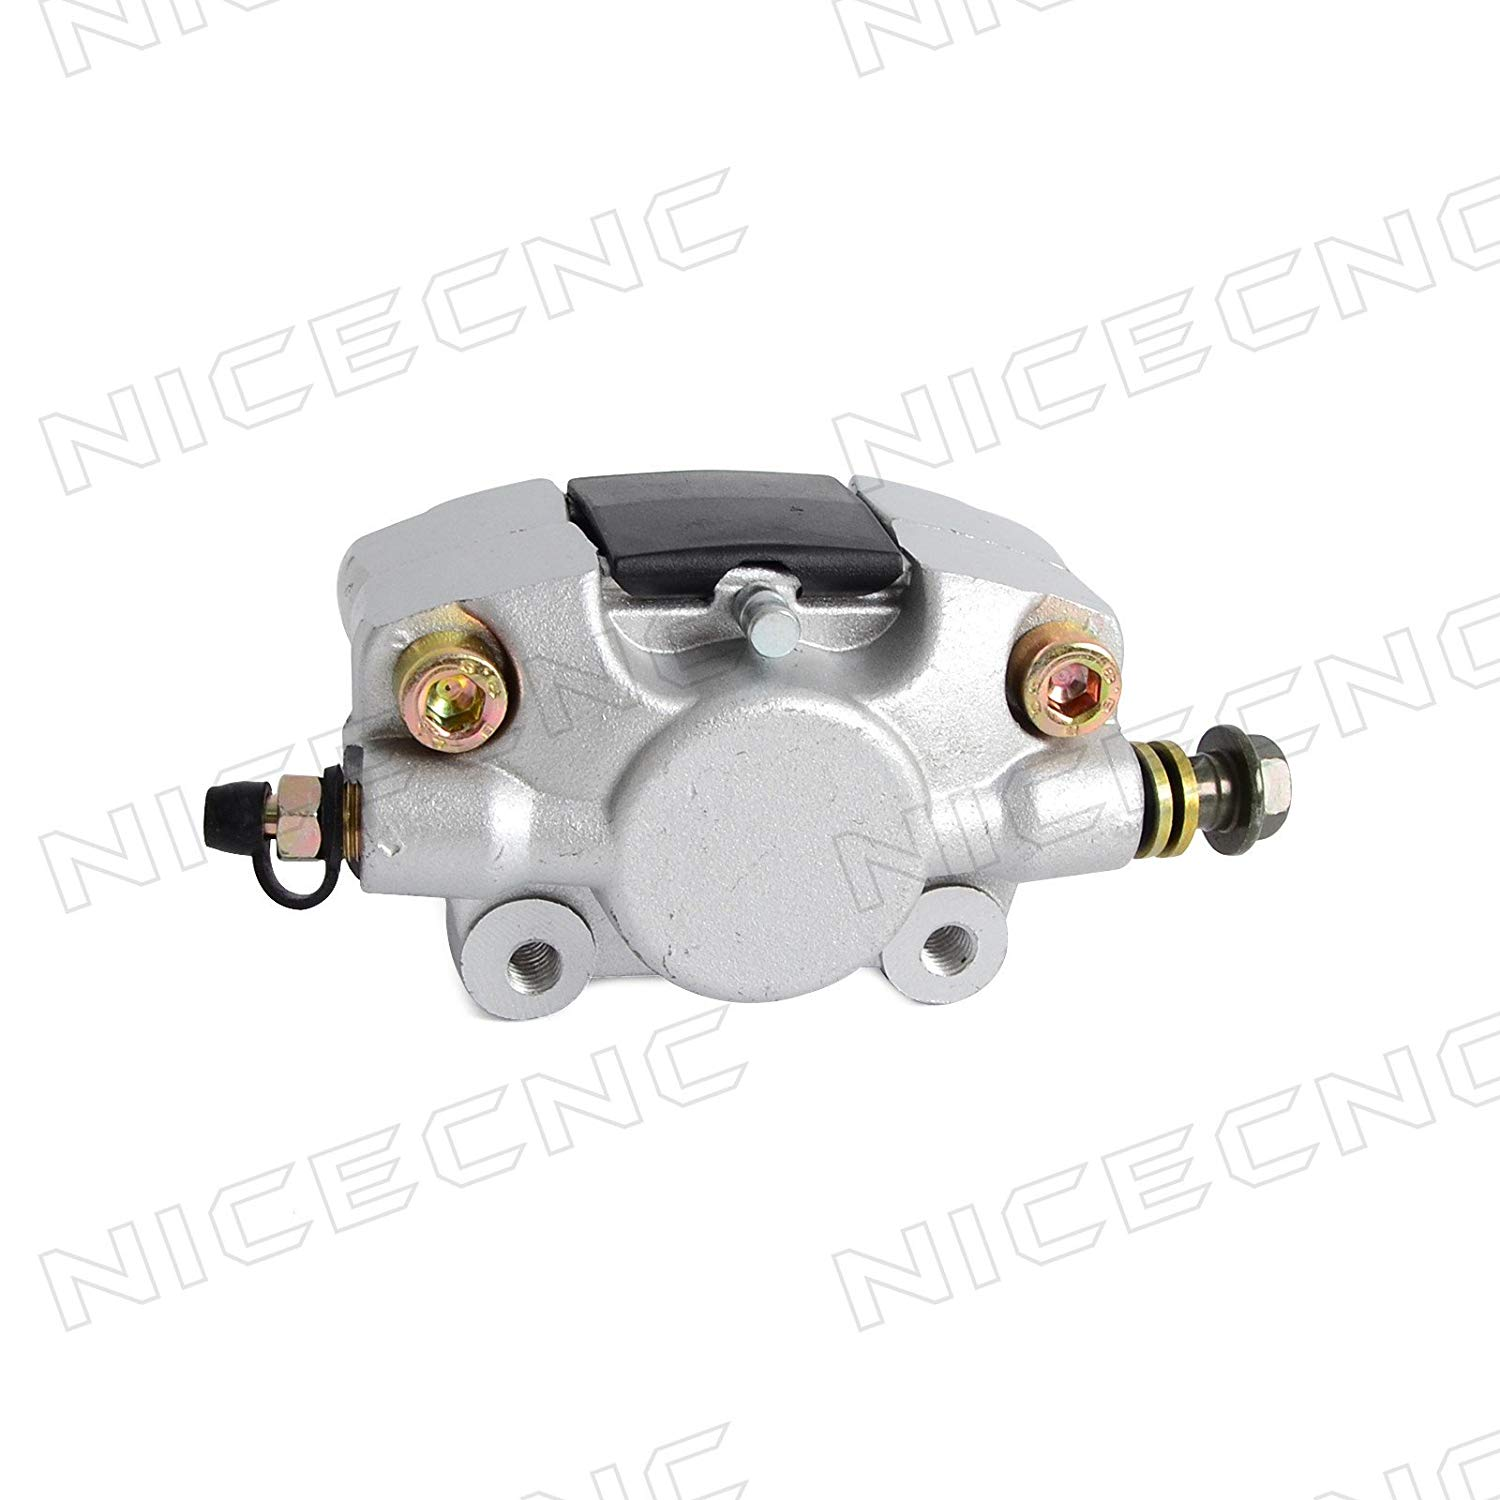 NICECNC Rear Hydraulic Large Pot Brake Caliper With Pads for Most of Chinese quad ATV bikes